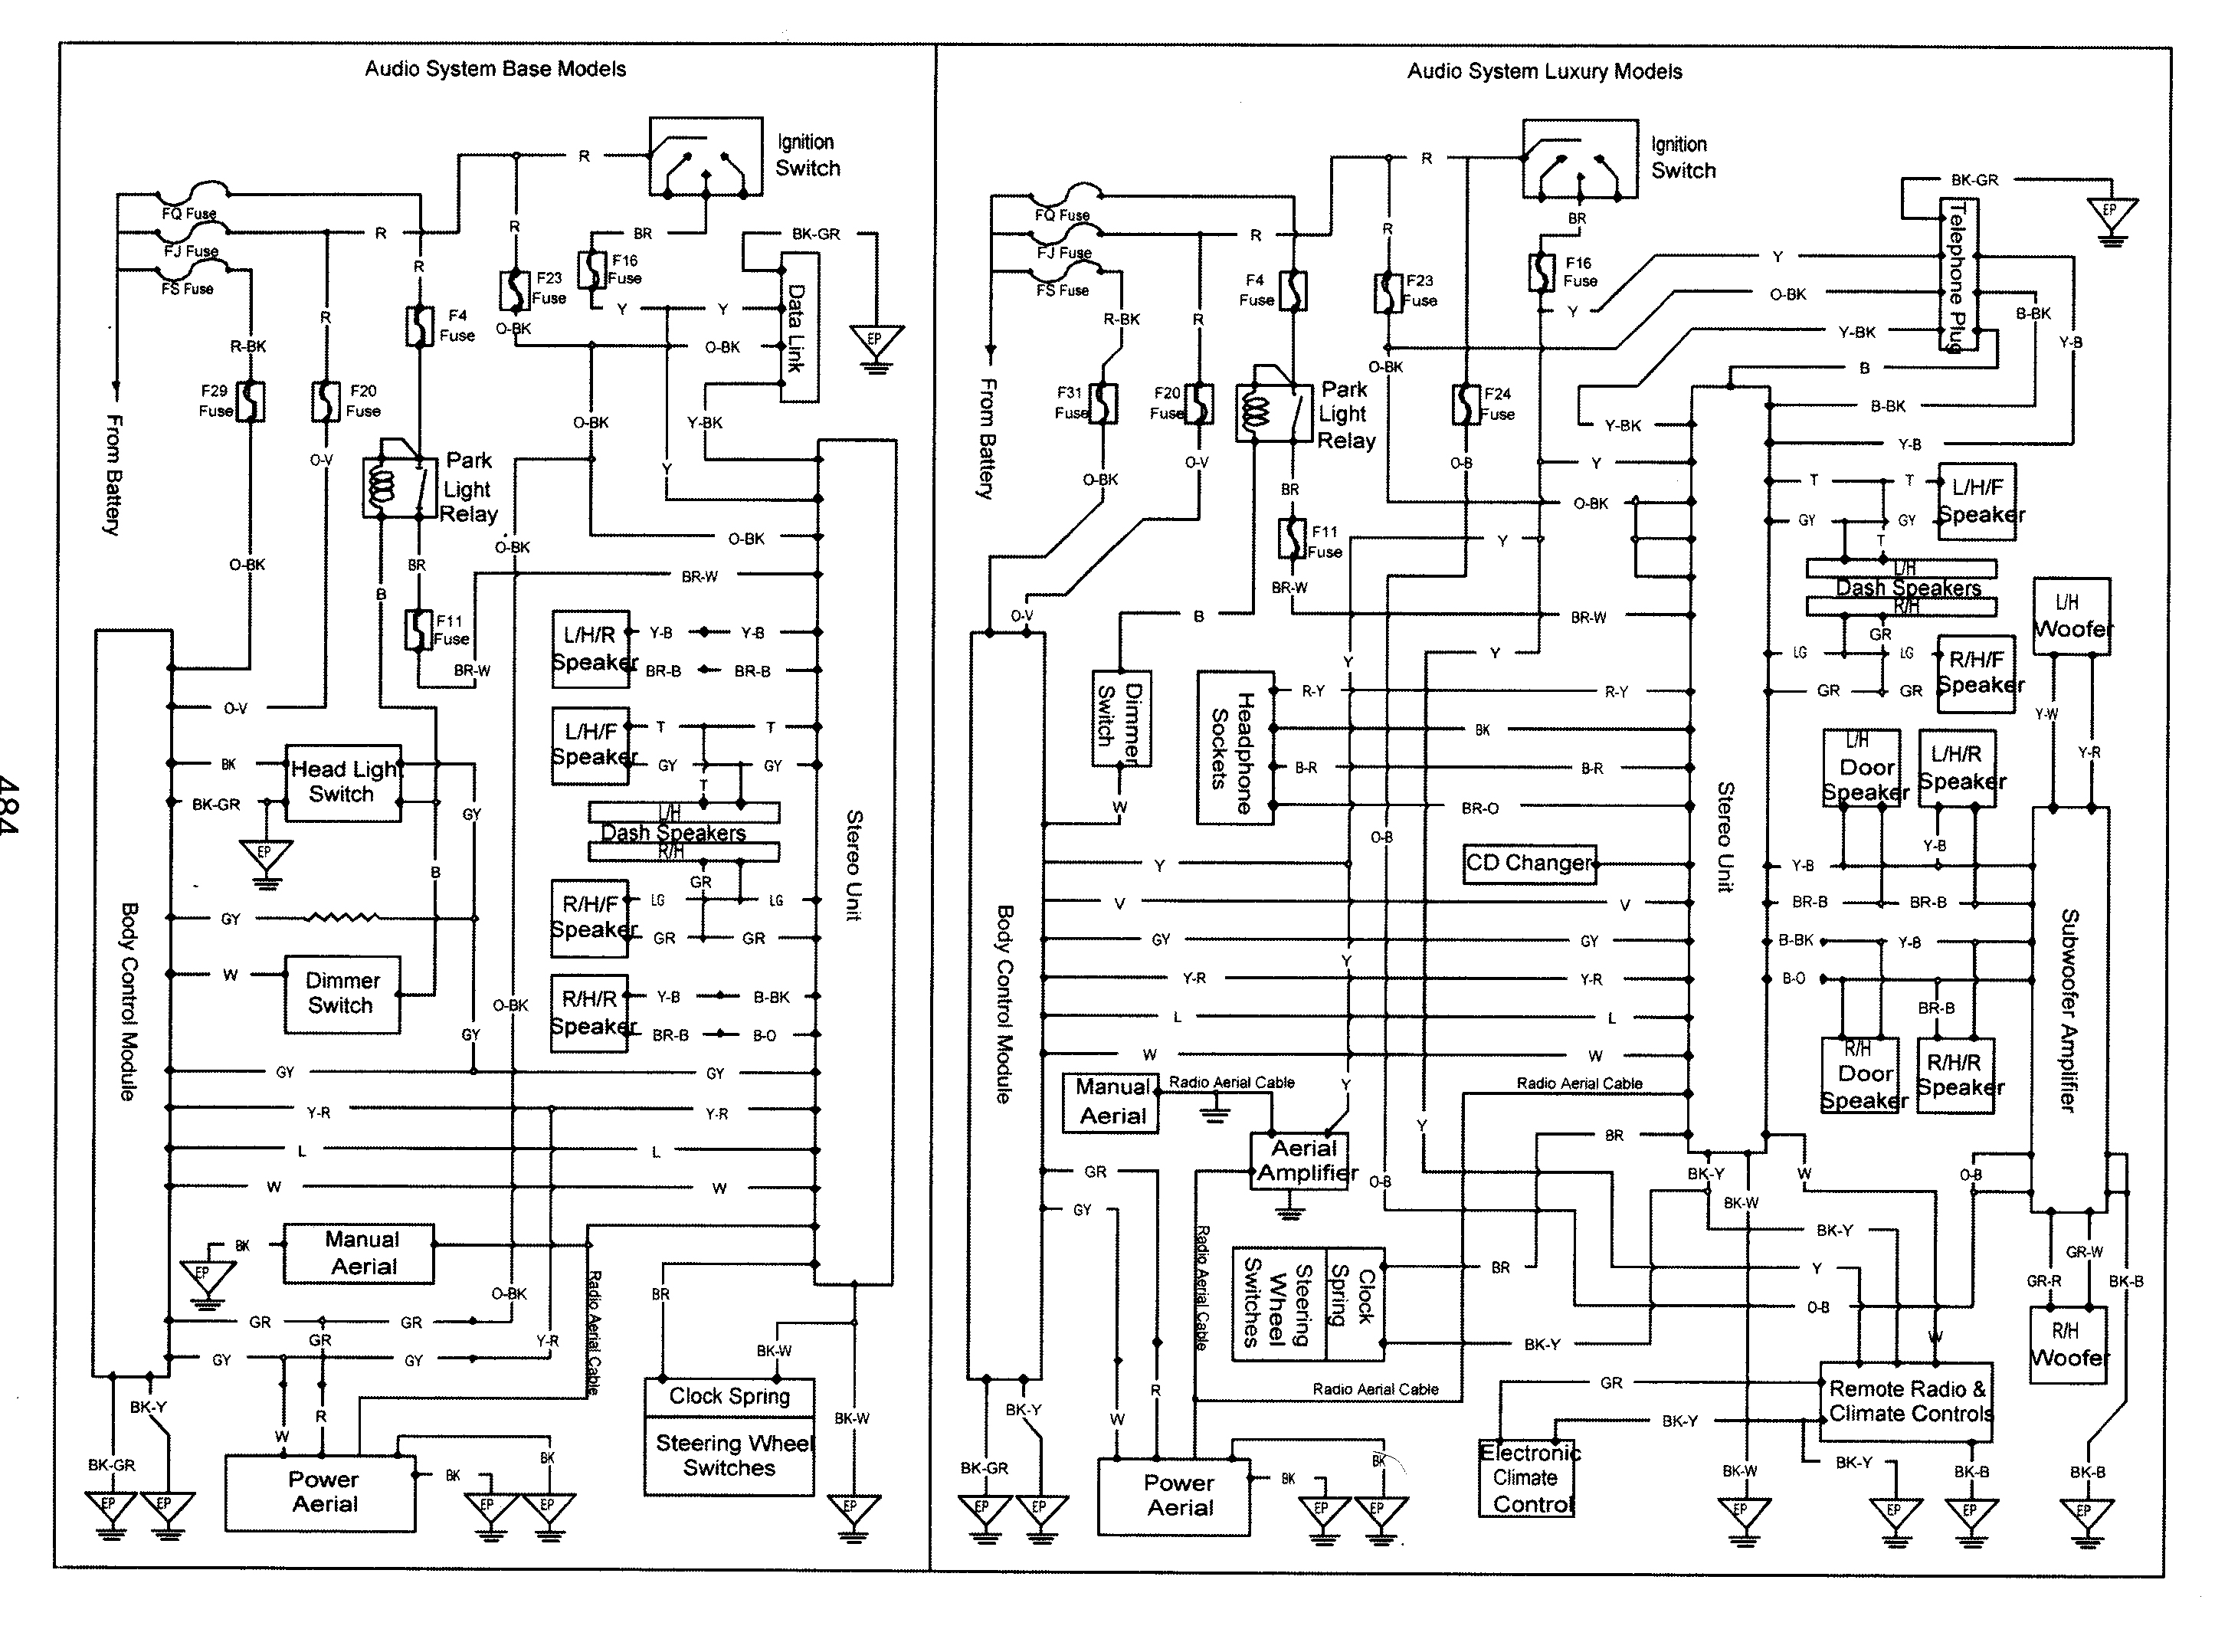 IMG_009?resized665%2C496 vz wiring diagram efcaviation com vz bcm wiring diagram at aneh.co